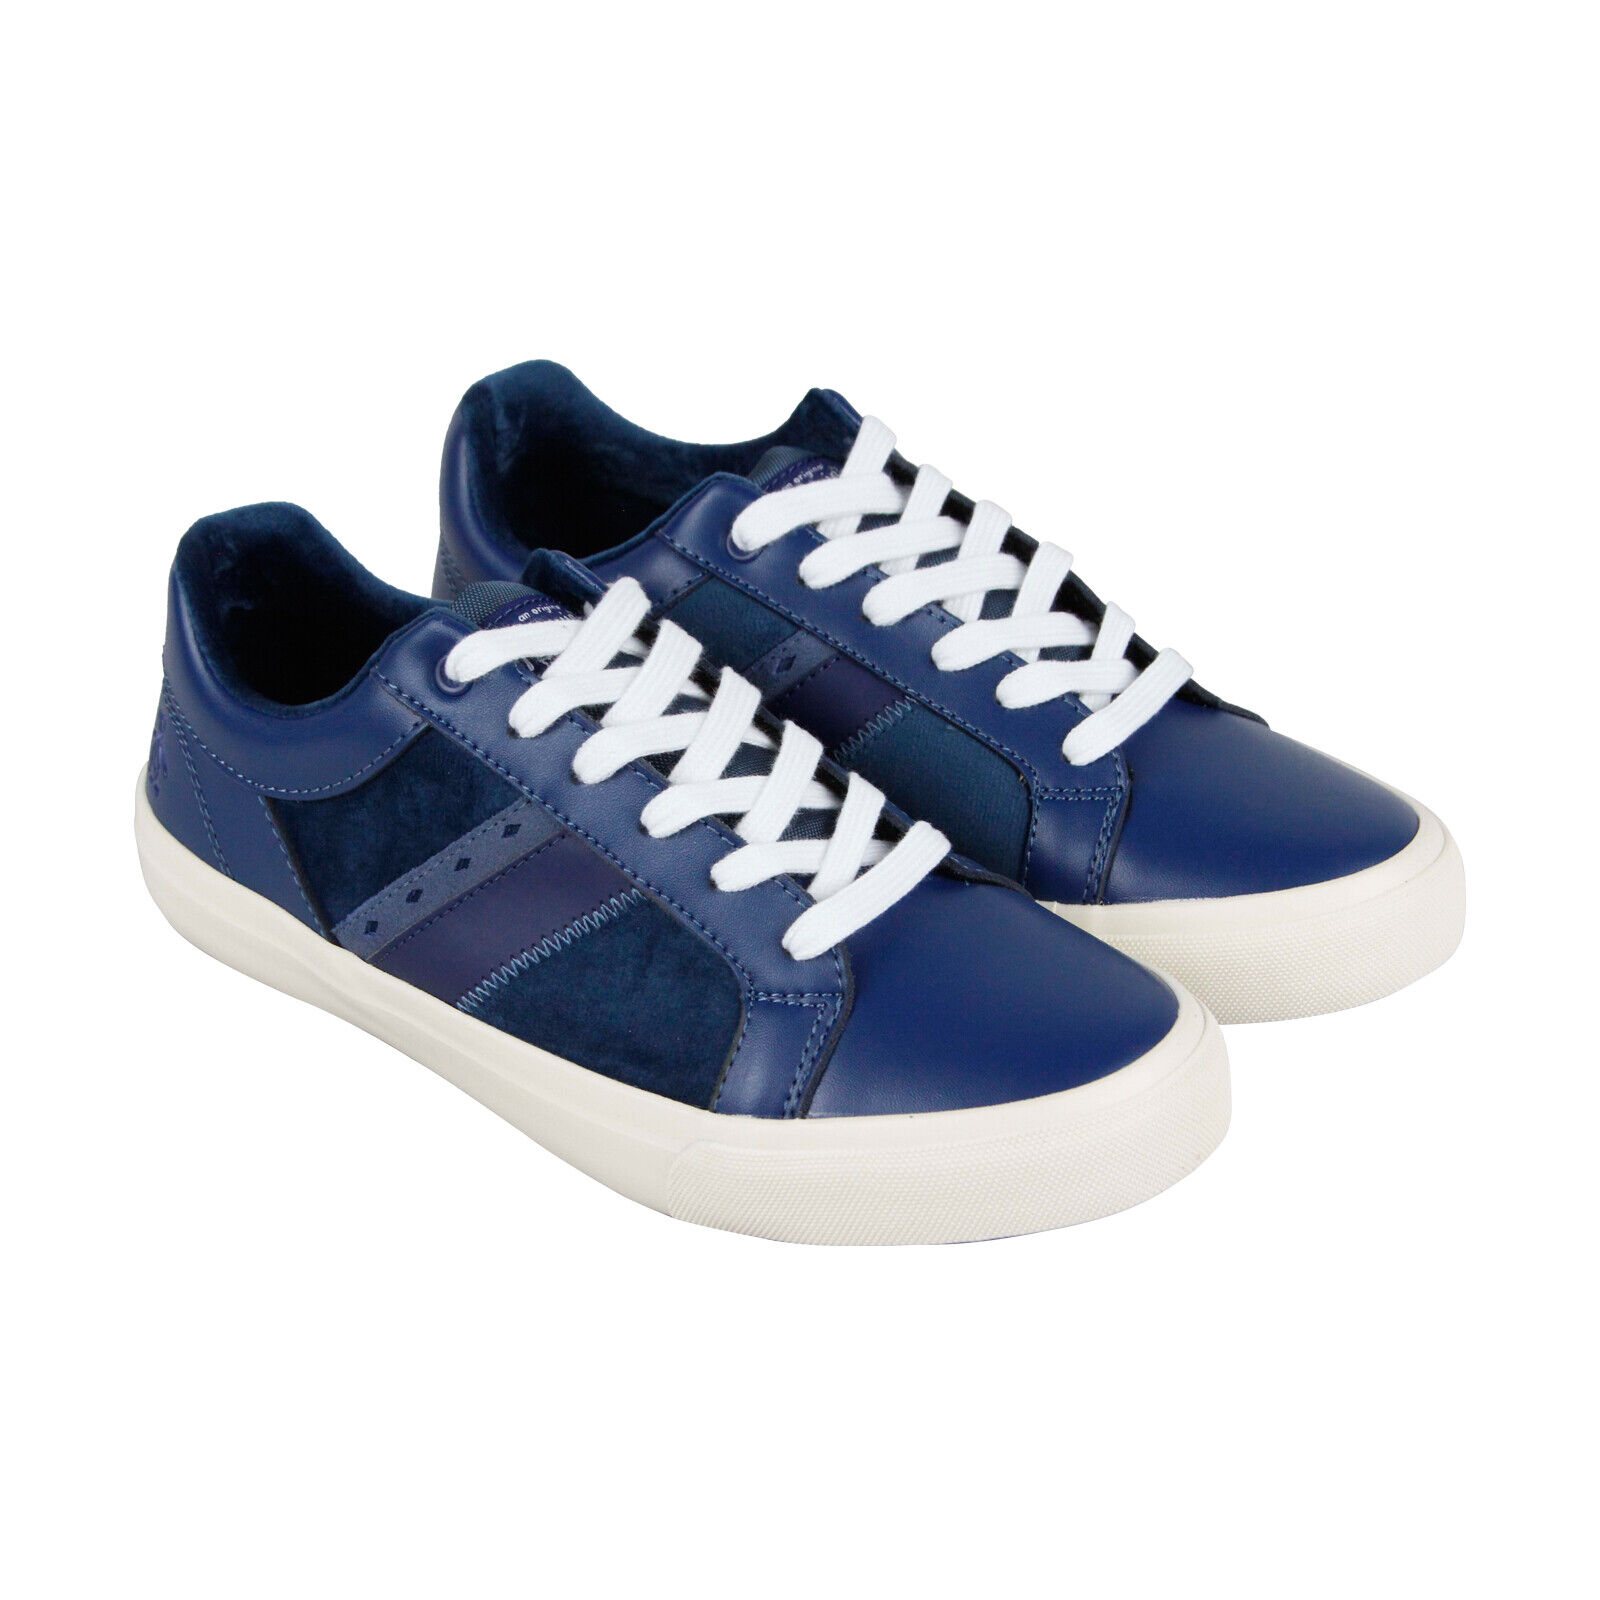 Original Penguin Bruce Mens bluee Leather Lace Up Sneakers shoes